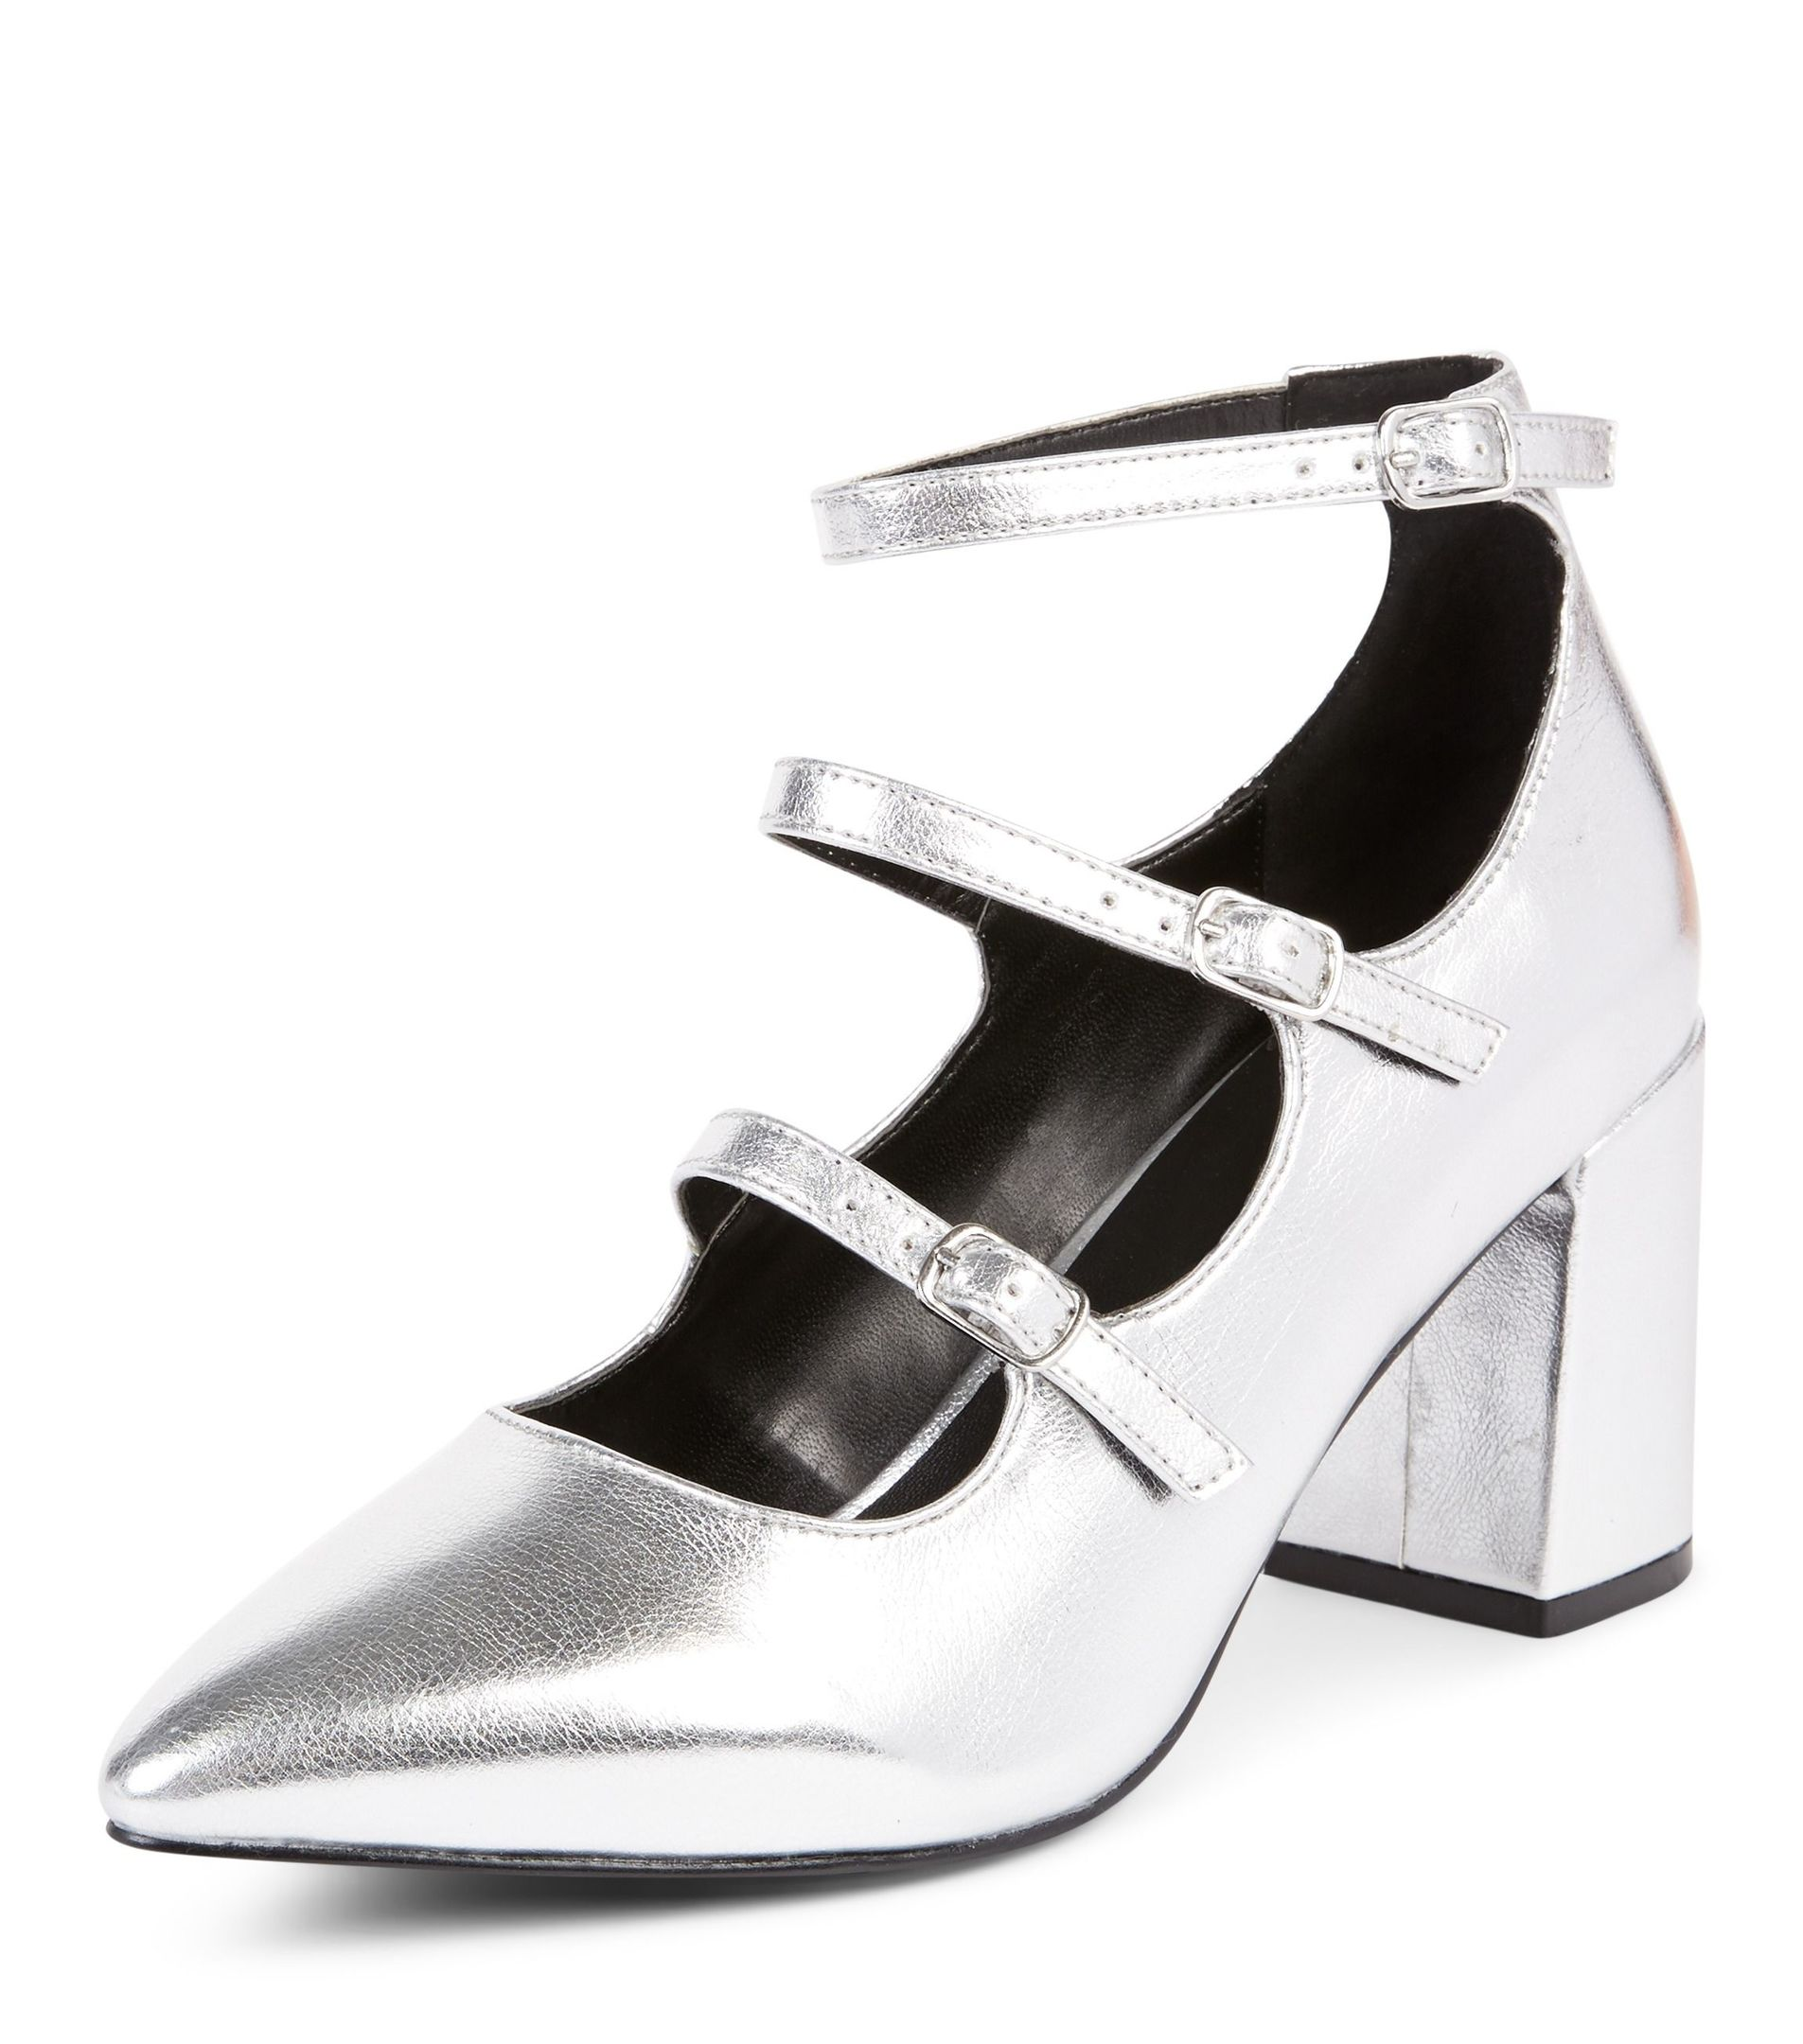 New Look Wide Fit Silver Patent Triple Strap Pointed Block Heels, available from newlook.com.